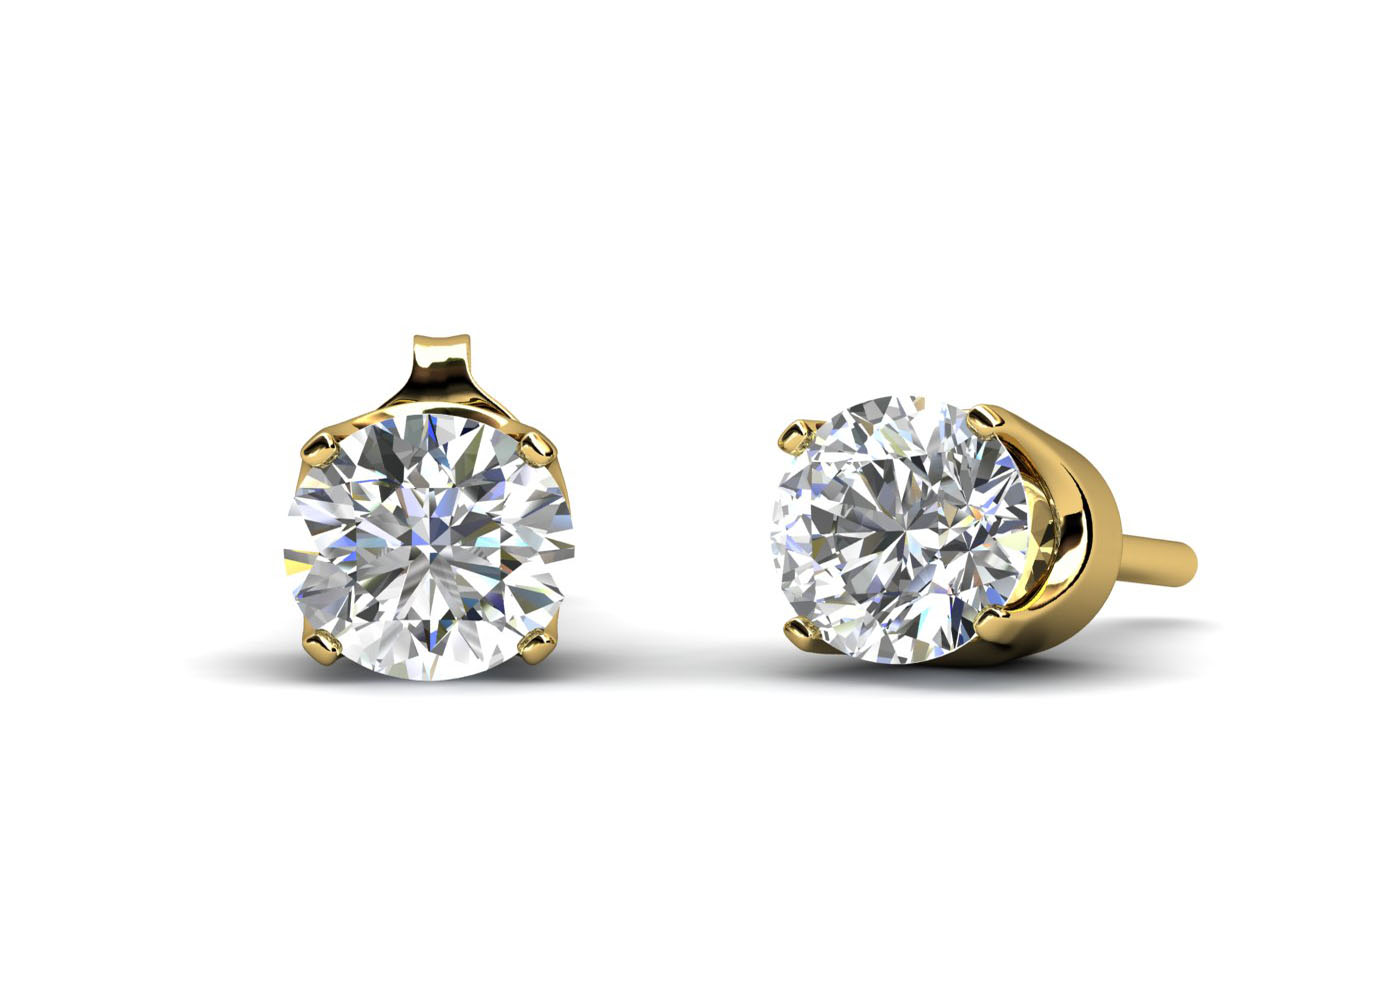 9ct Claw Set Diamond Earrings 0.15 Carats - Image 2 of 6